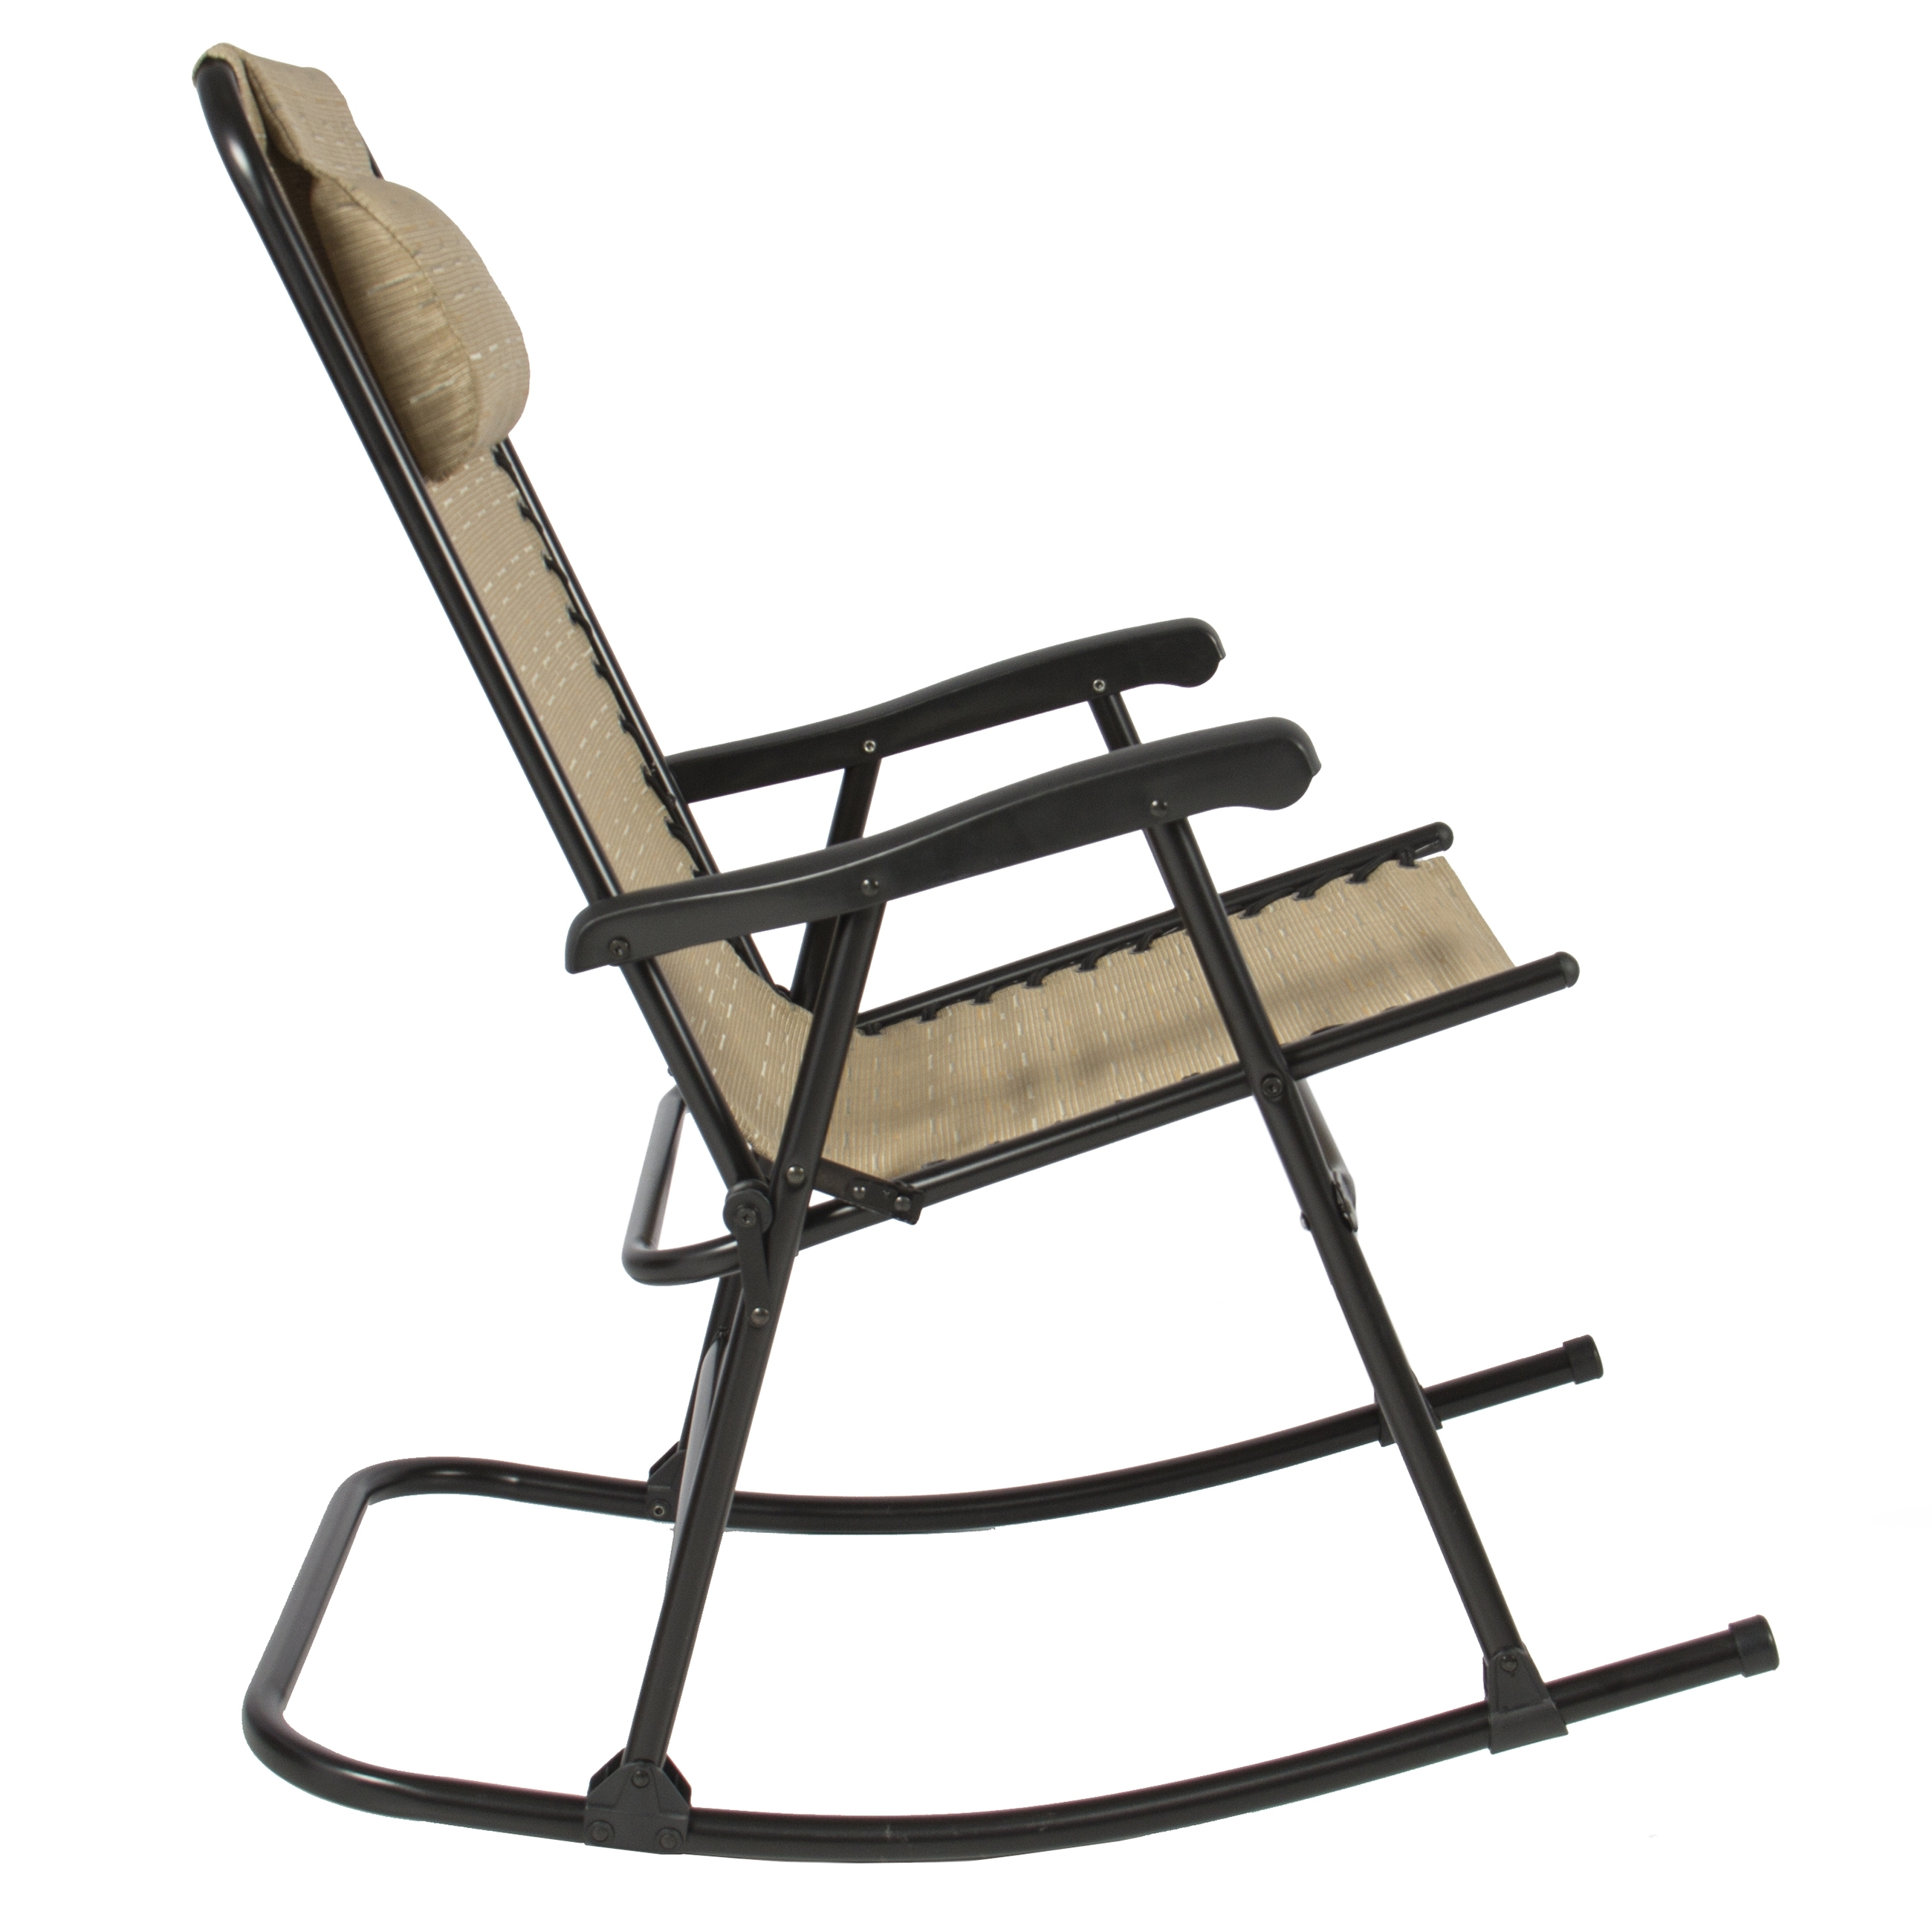 Folding Rocking Chair Foldable Rocker Outdoor Patio Furniture Beige Intended For Folding Rocking Chairs (#4 of 15)